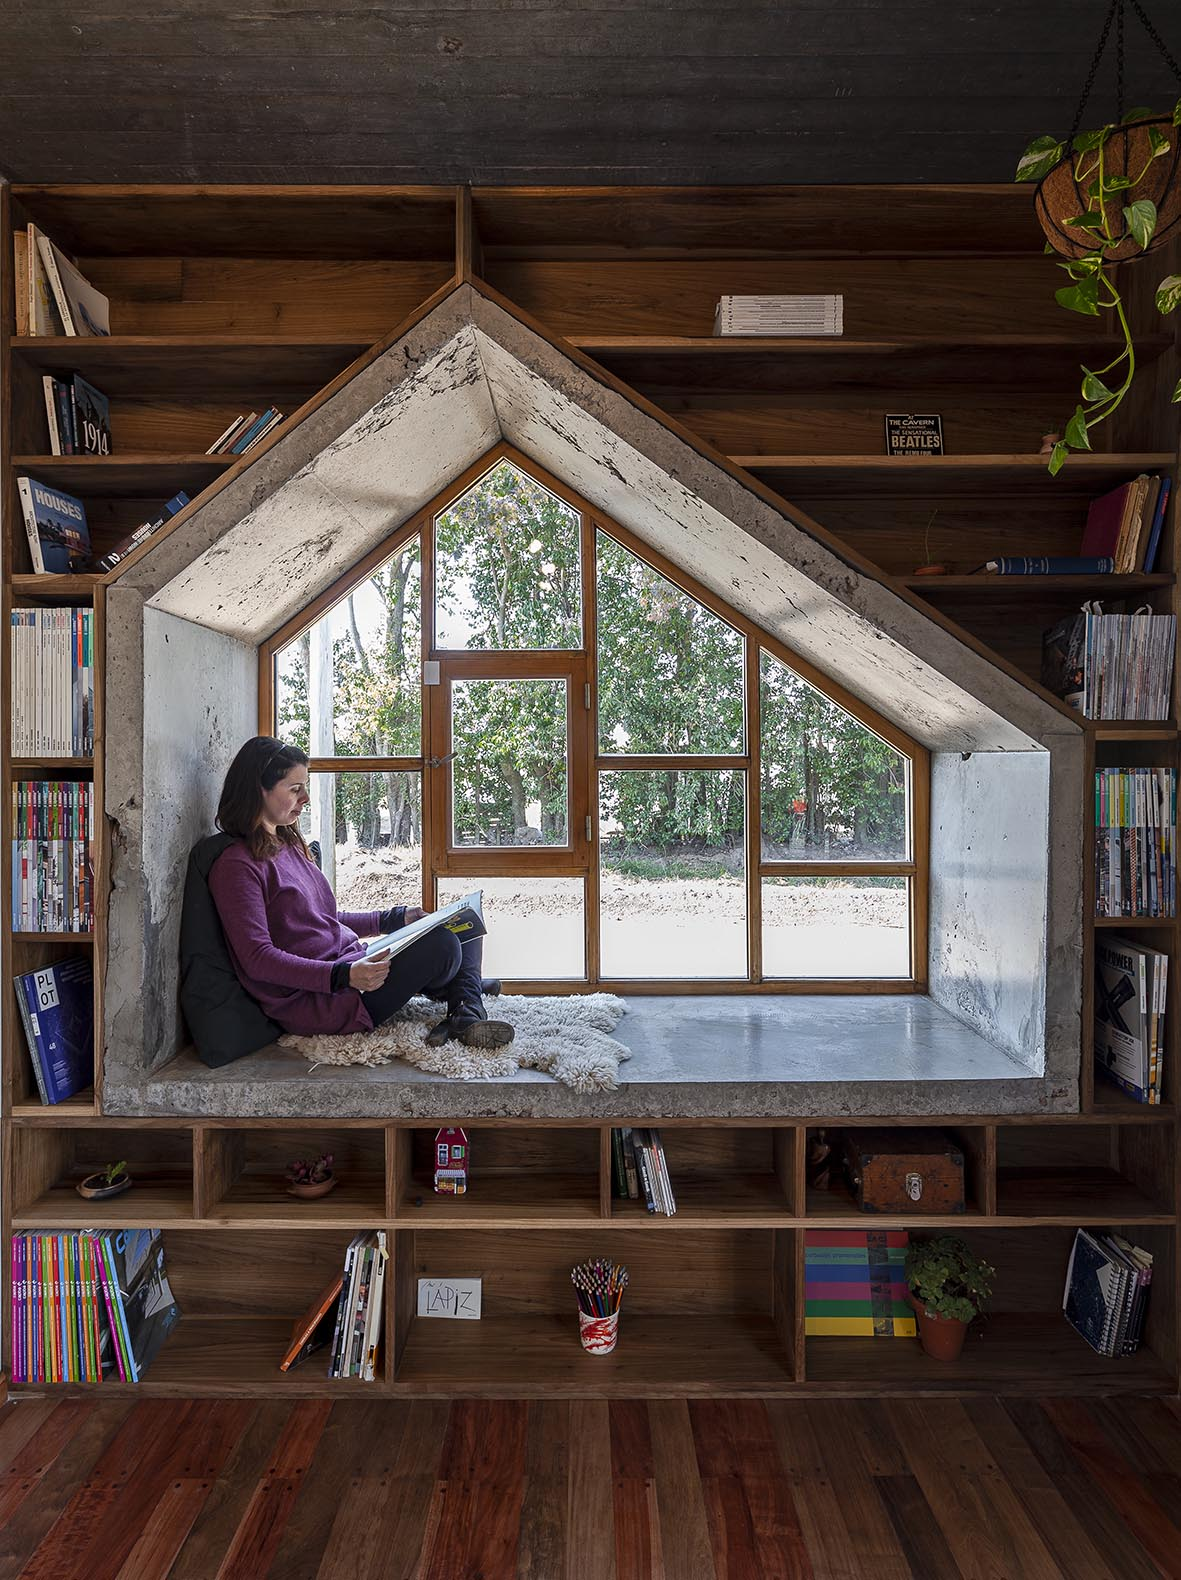 A window seat surrounded by dark wood shelving, has an interior of raw concrete.